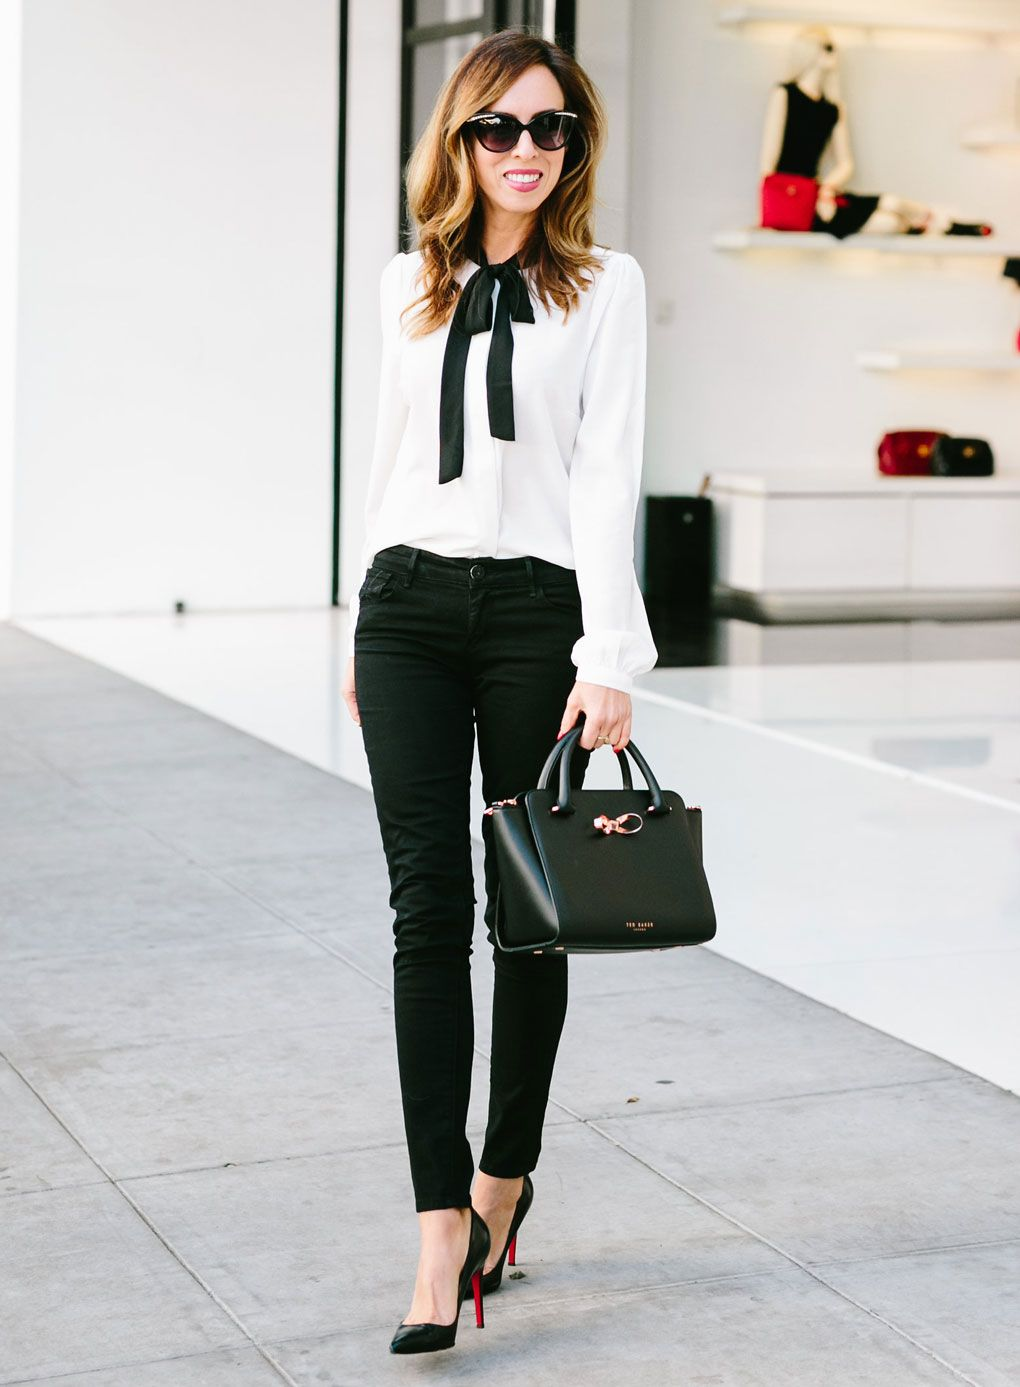 a17277637e82 Sydne Style - Los Angeles fashion blogger and People StyleWatch contributor Sydne  Summer shows how to wear black jeans with a bow blouse at the office.